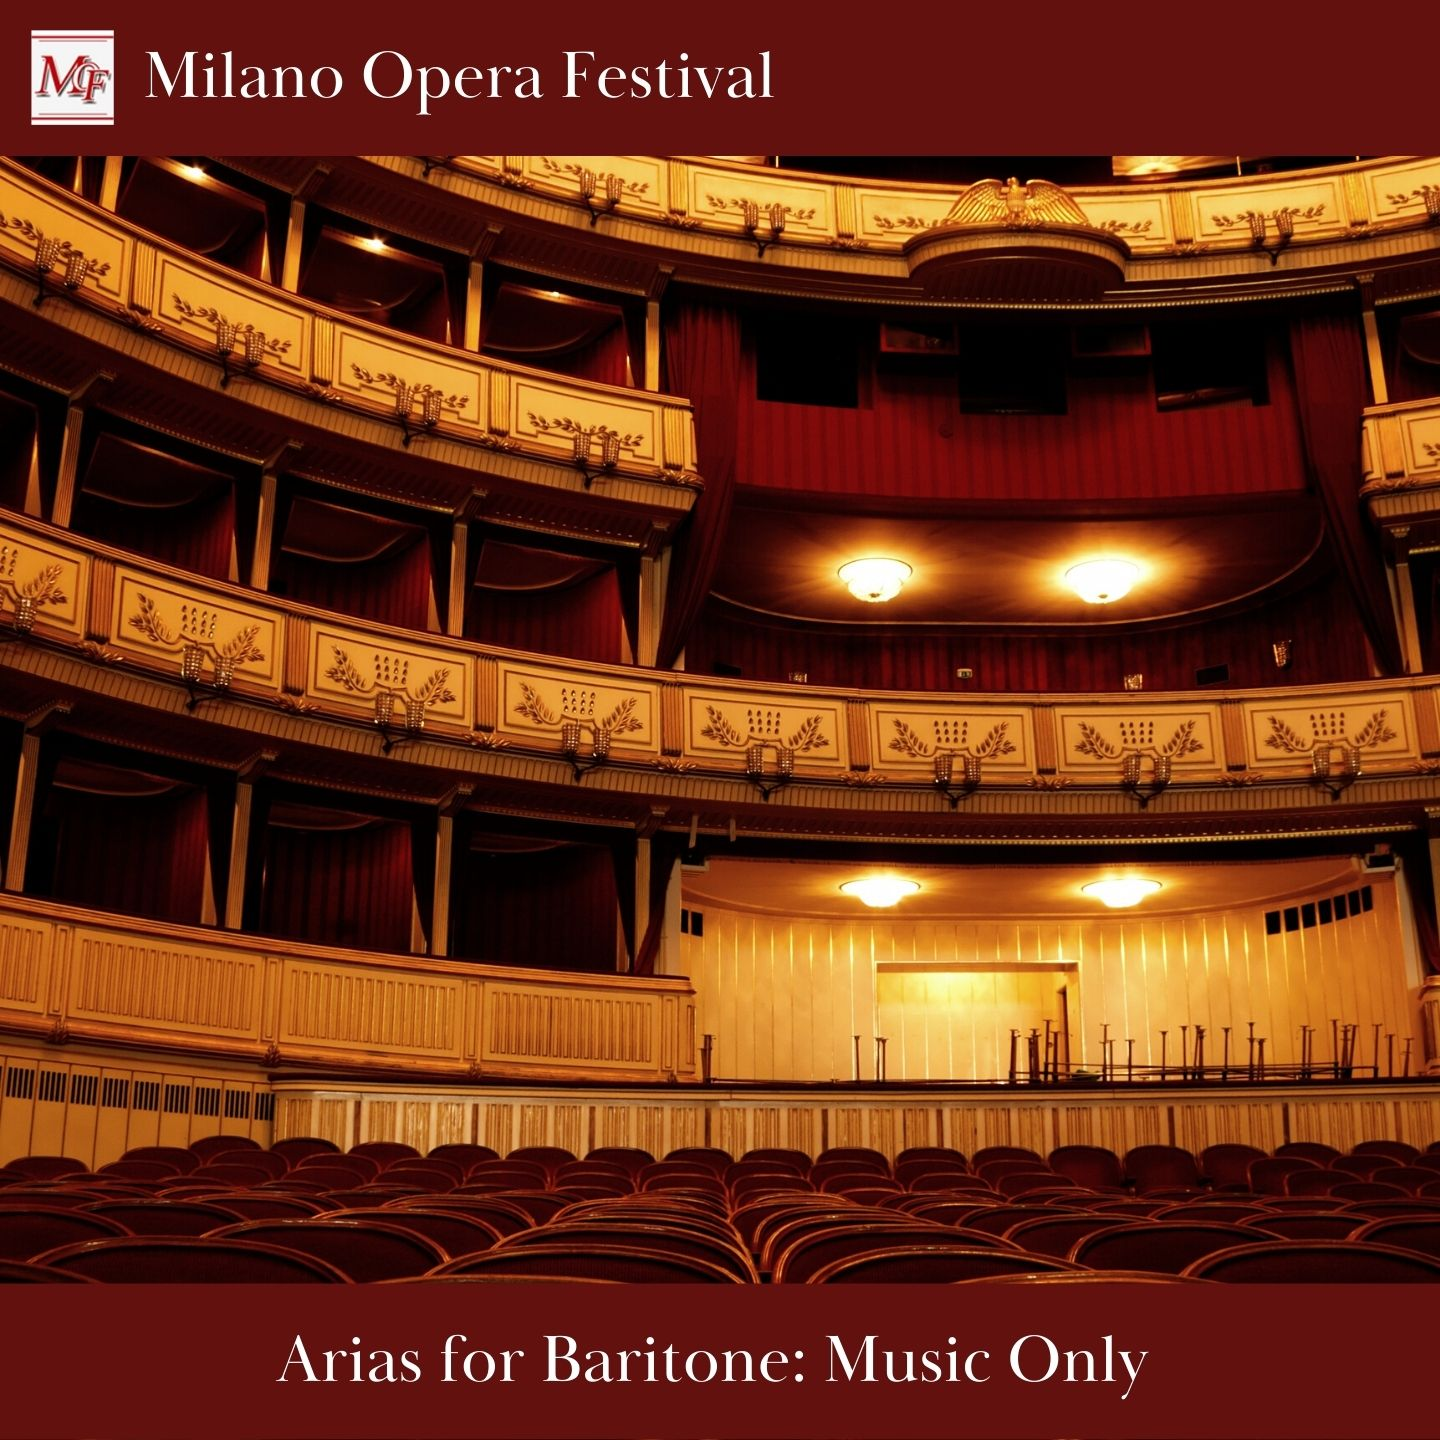 Arias for Baritone - Only Music + Video Karaoke Tutorial